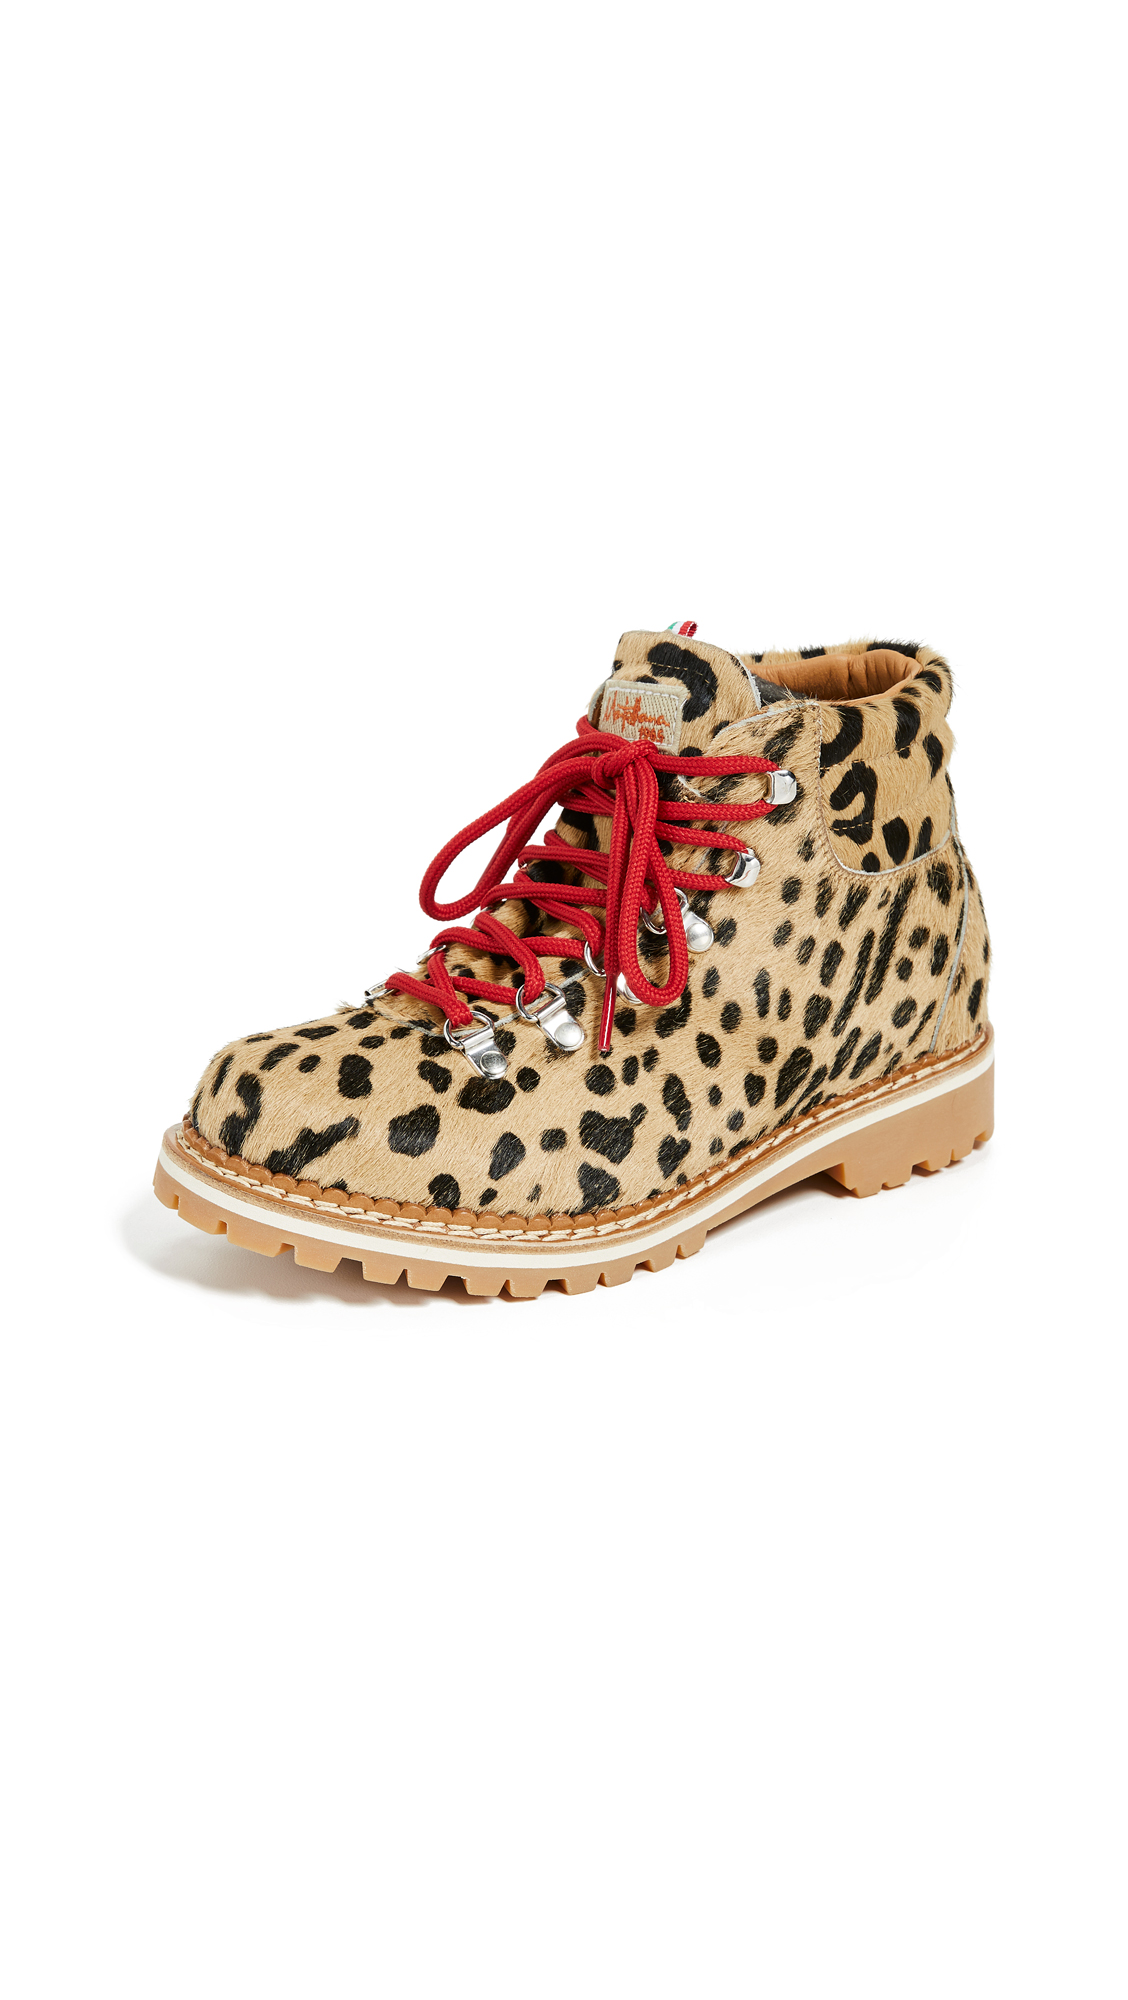 MONTELLIANA Margherita Hiker Boots in Leopard